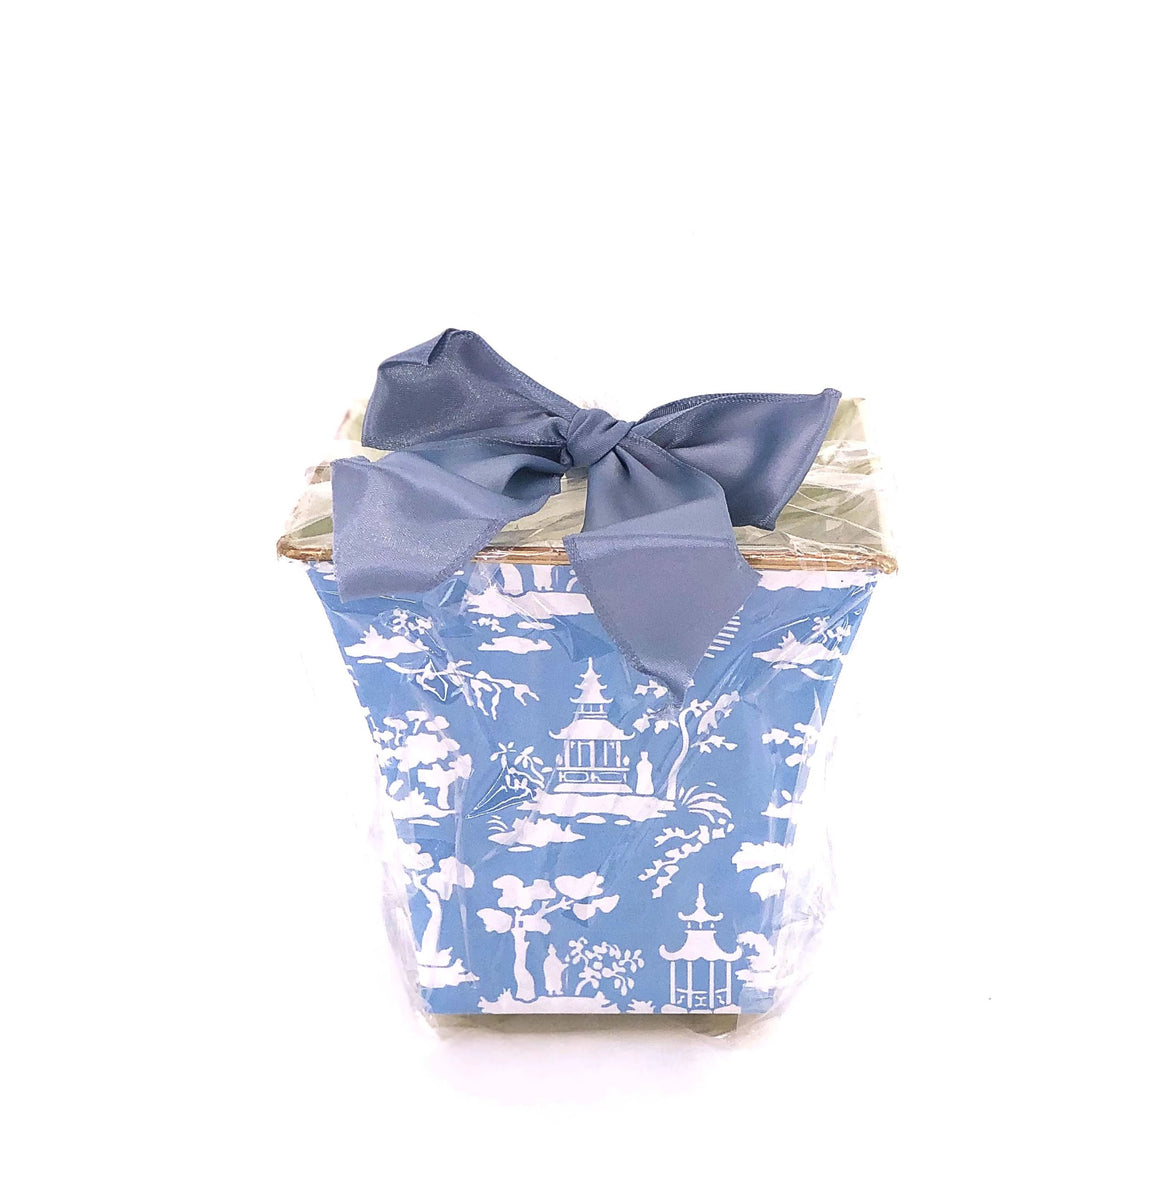 Blue Chinoiserie Cachepot Candle with Monogram - The Preppy Bunny